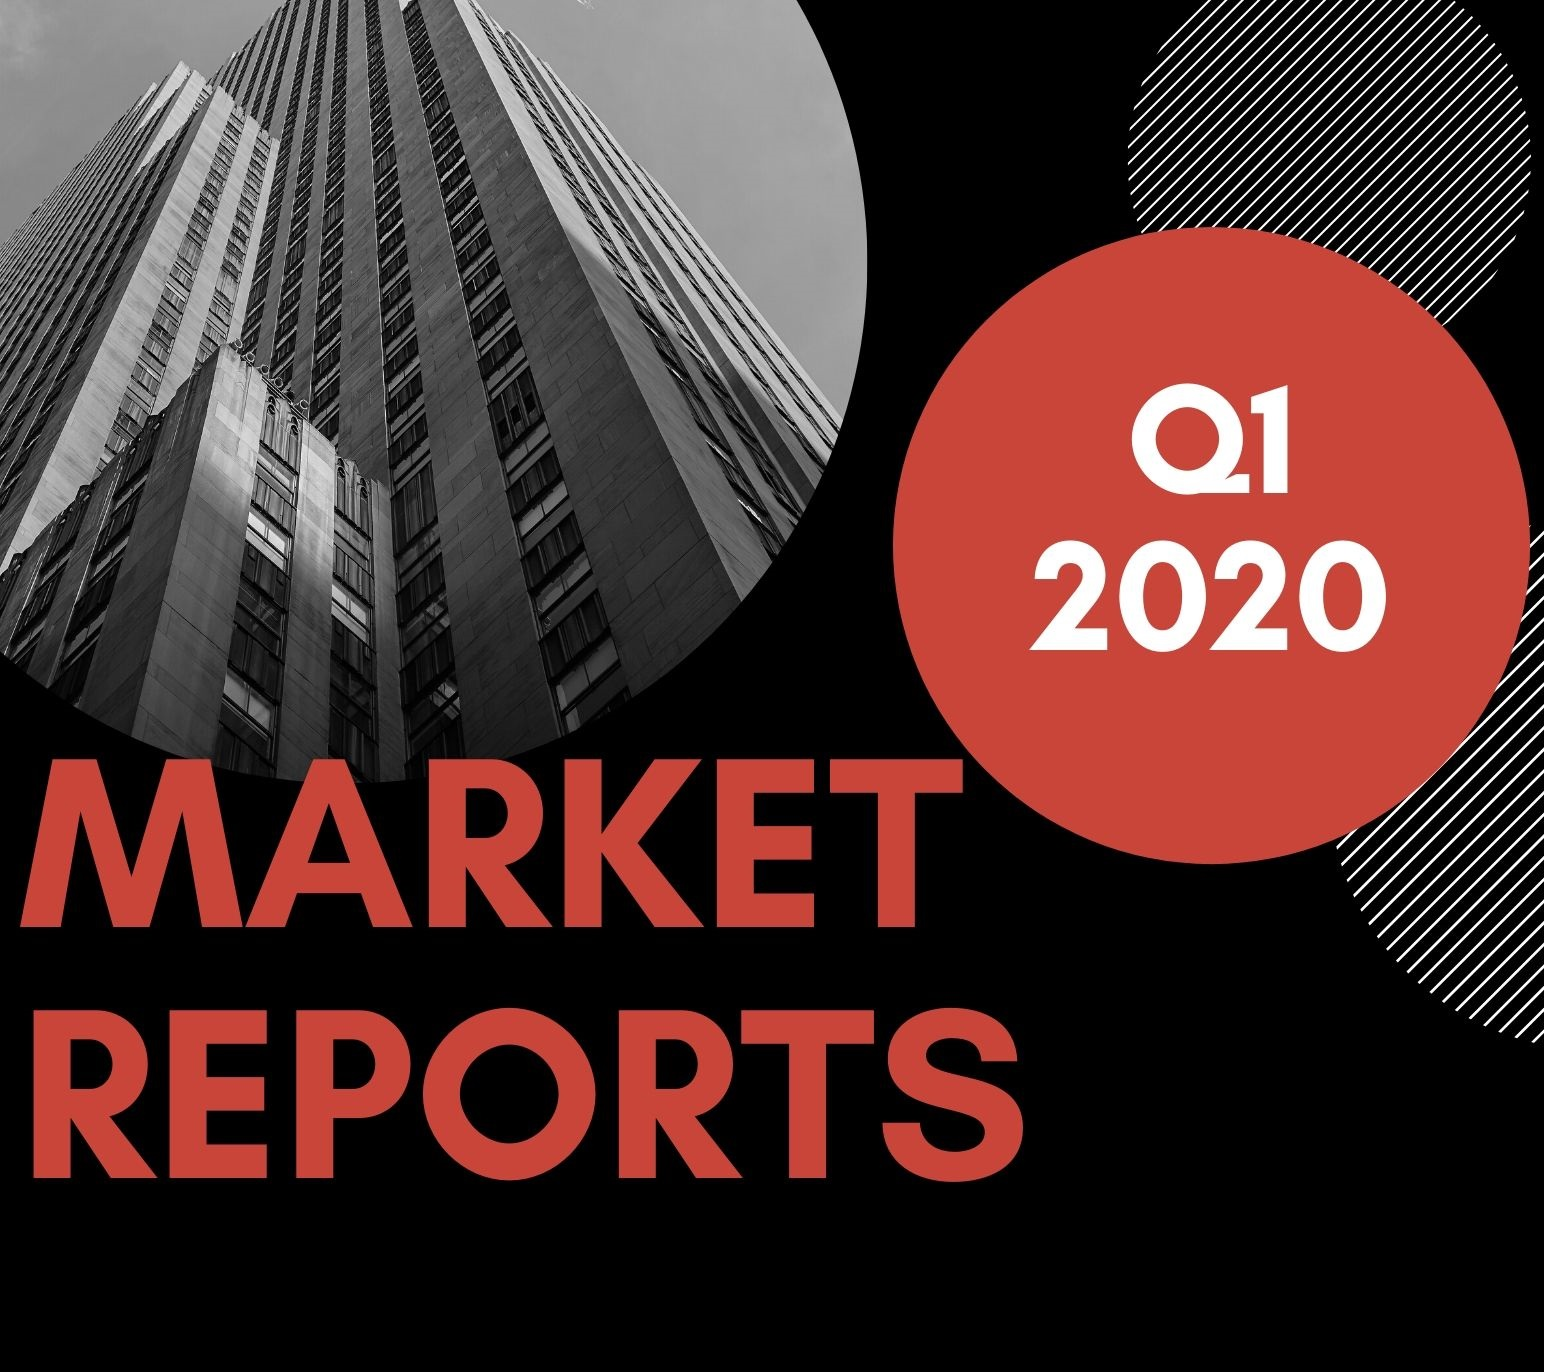 We Are Pleased To Provide You With This Copy Of Berger Commercial Realty Corp.'s  Q1 2020 Broward And Palm Beach County Market Reports